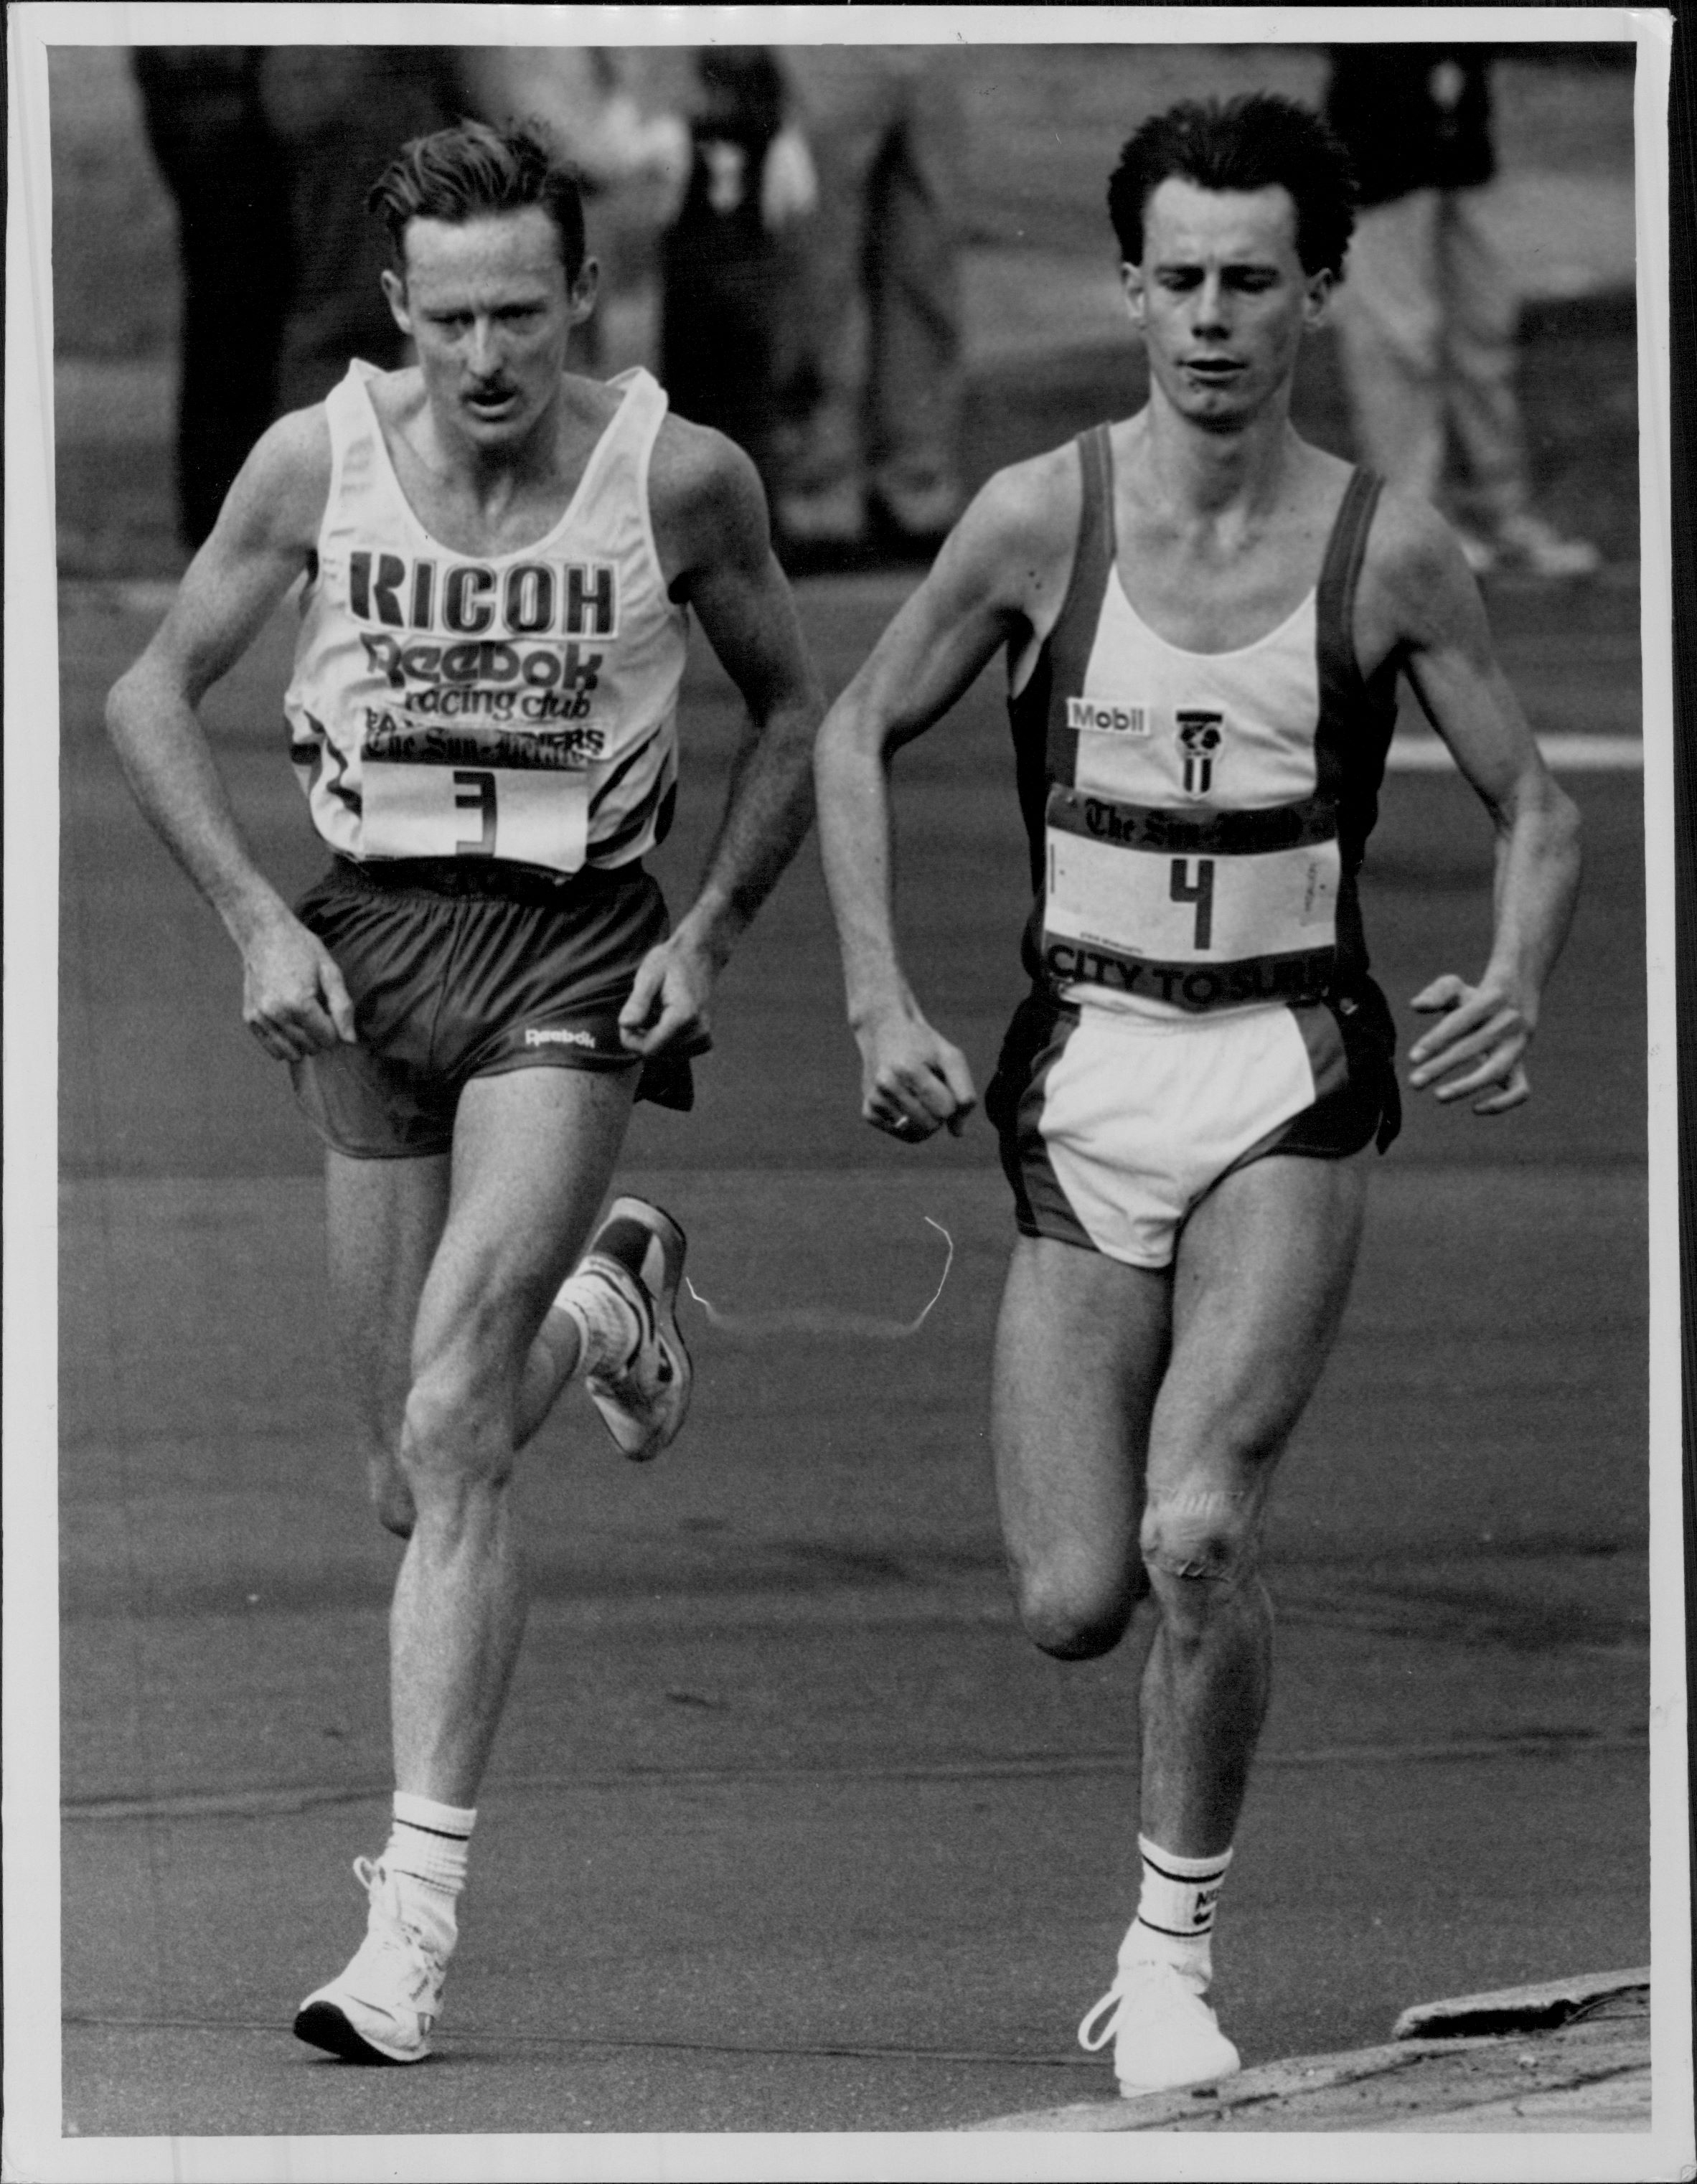 Steve Moneghetti (right) mid race.